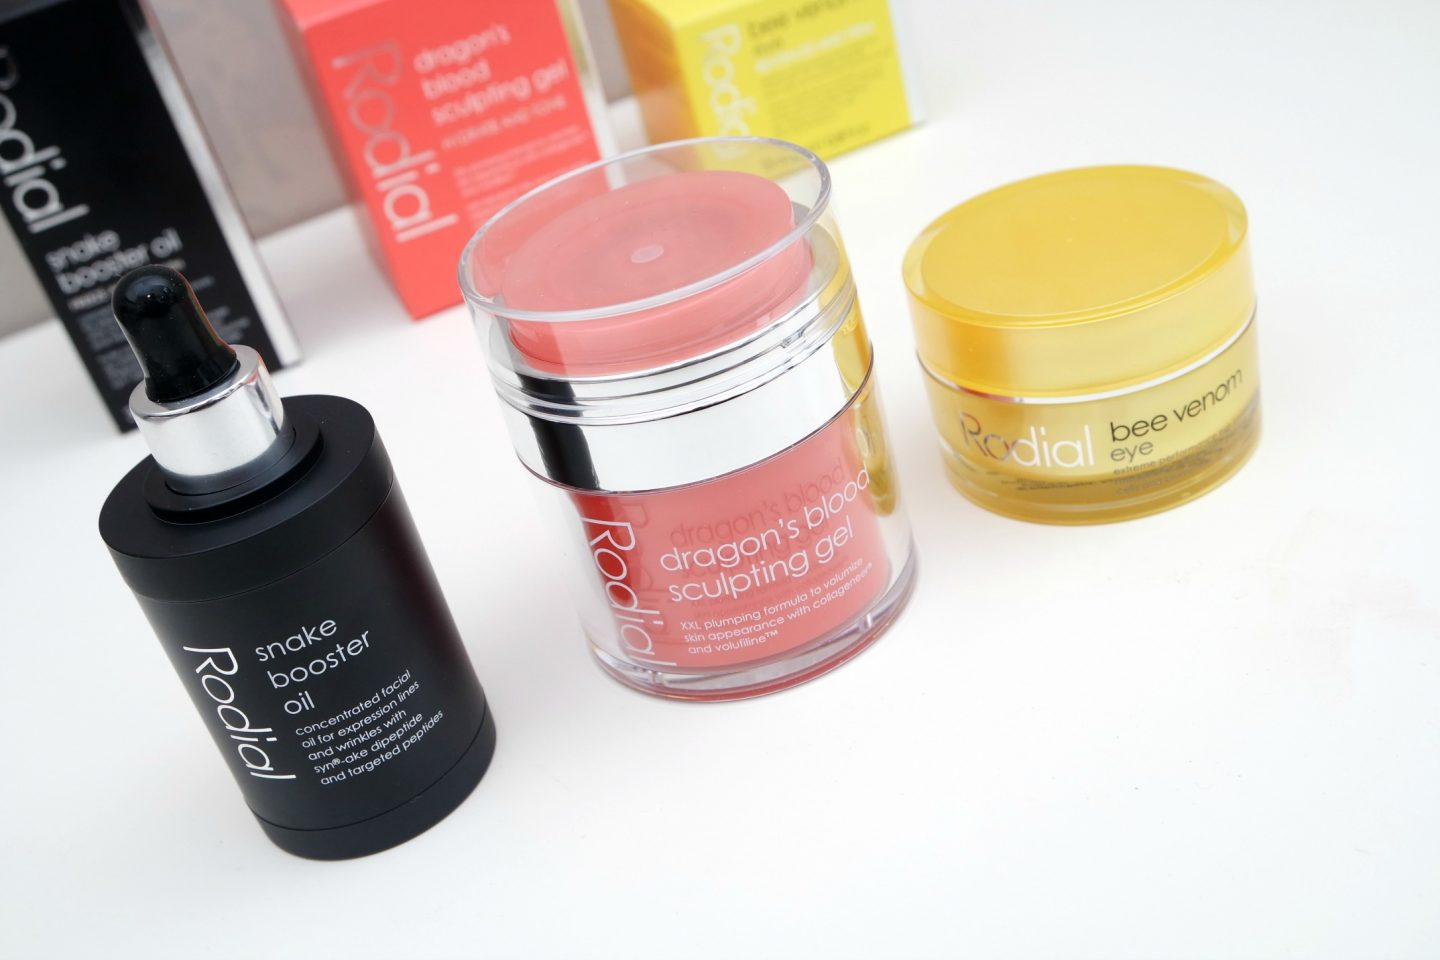 Rodial Skincare Products